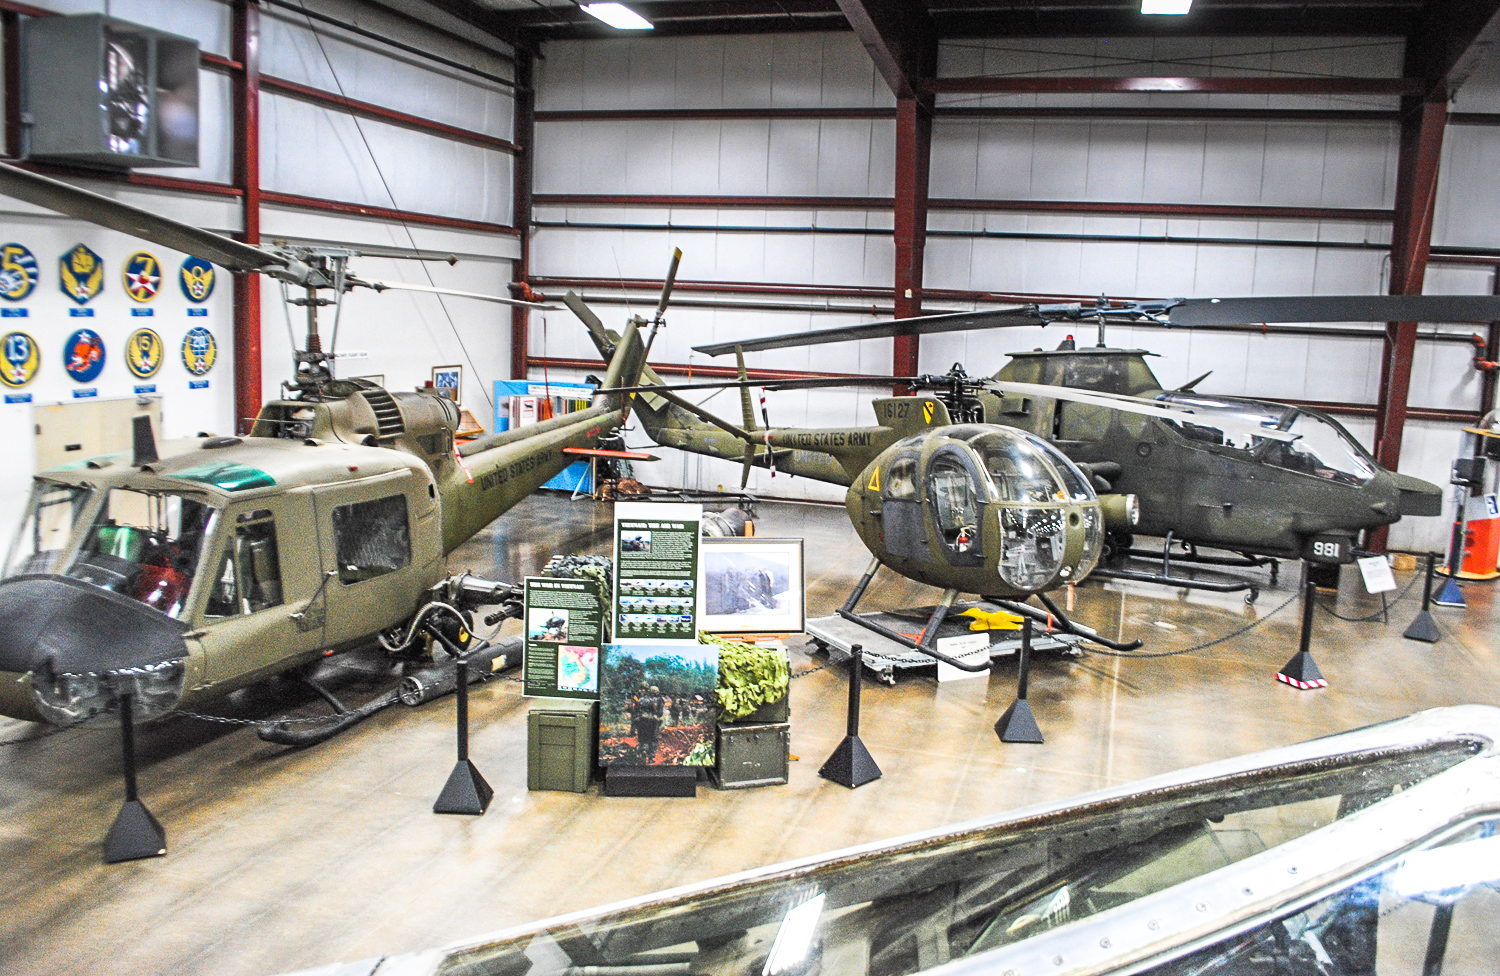 Some of the primary military helicopters involved in the Viet Nam War arrayed for the museum's latest exhibit honoring US service personnel and the US 50th anniversary commemoration of the Vietnam War. (photo via NEAM)